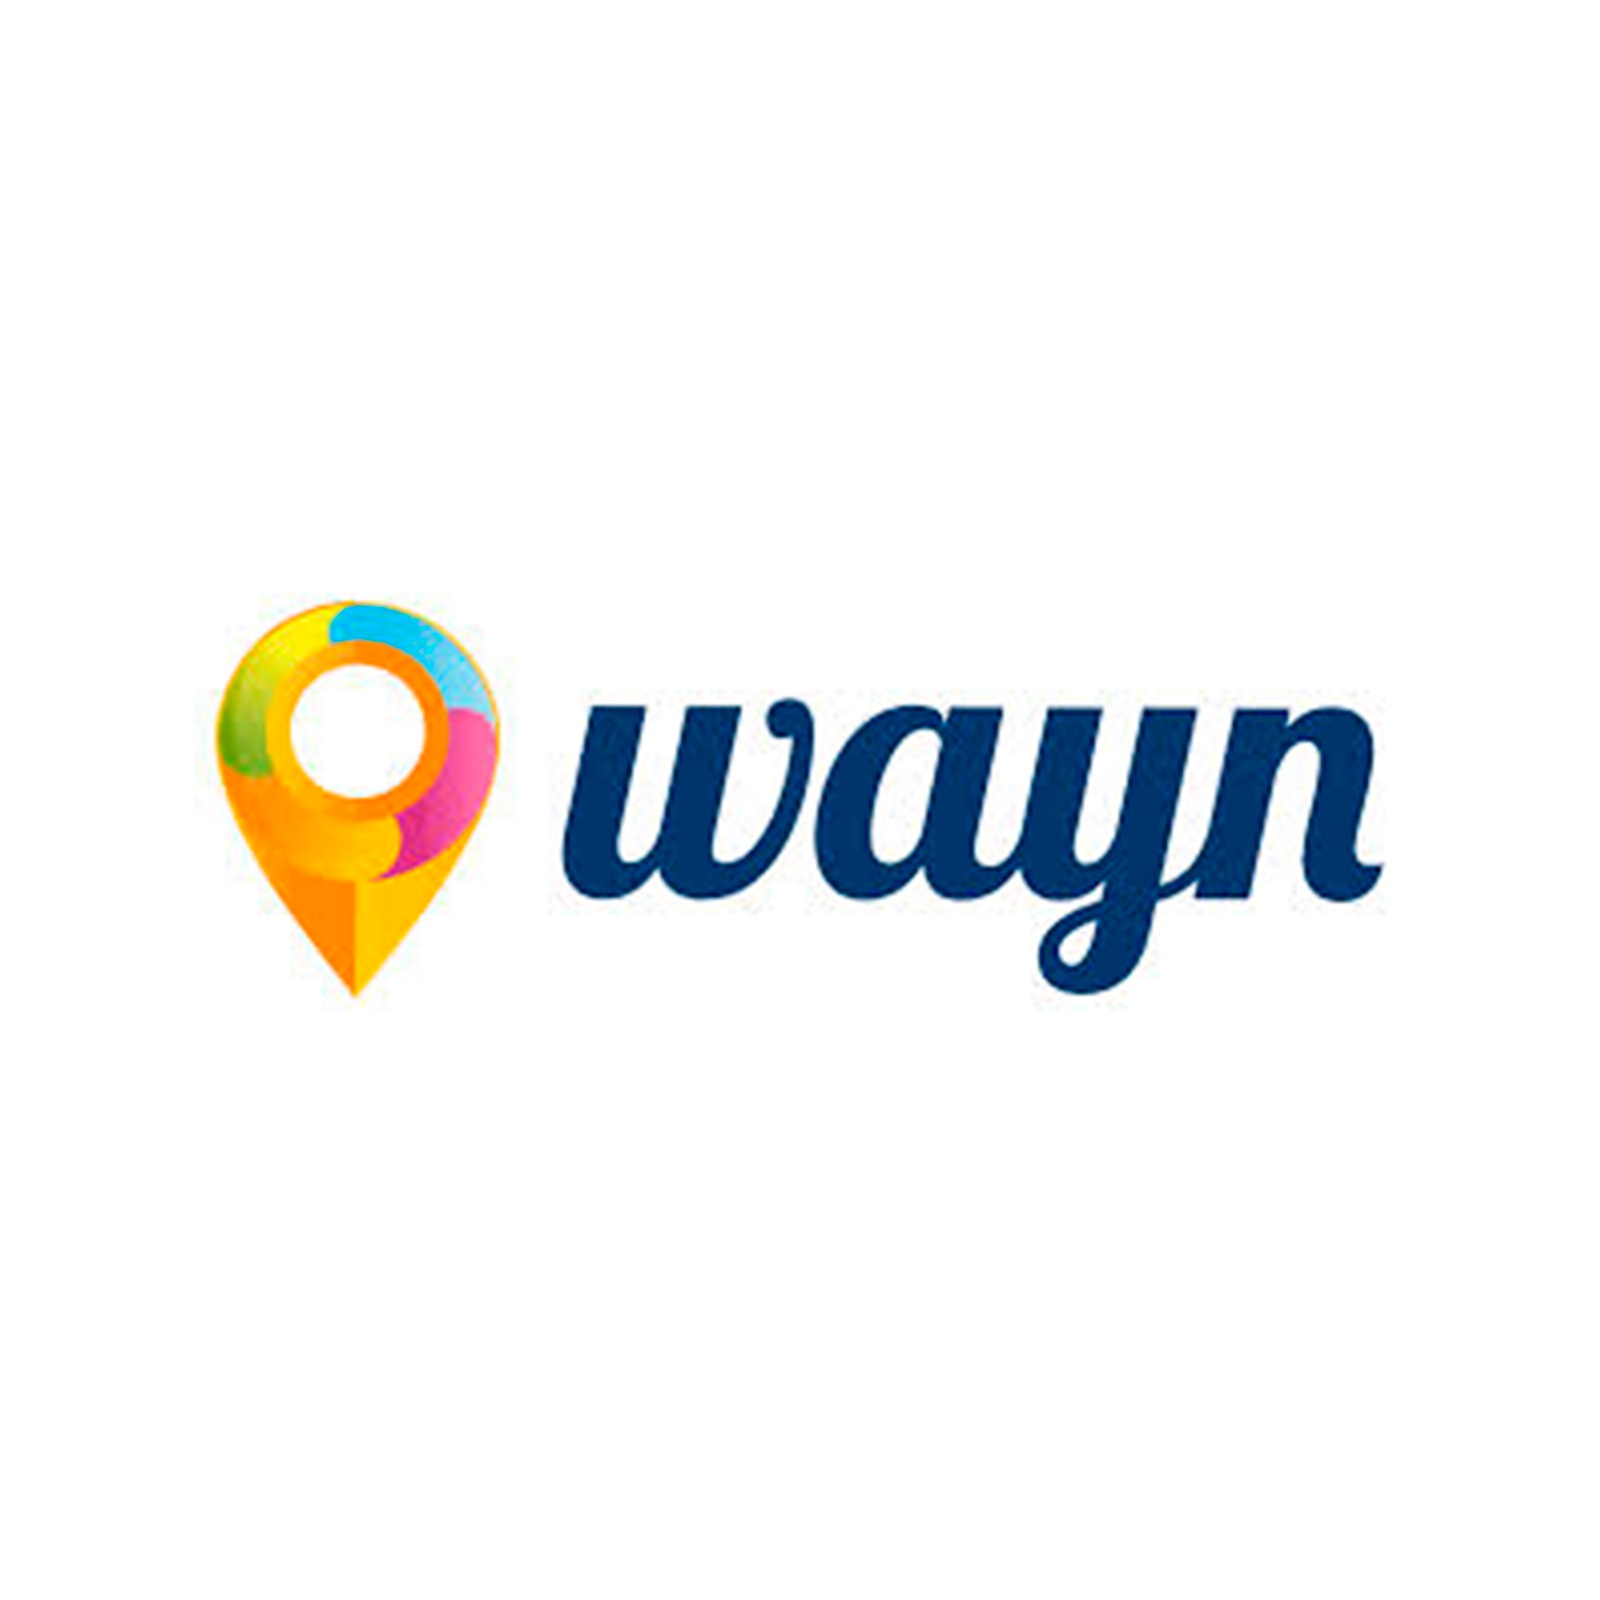 Wayn is a travel- and lifestyle-based social networking platform and offers its users the ability to discover where to go, what to do and how to meet like-minded people to share their experiences.